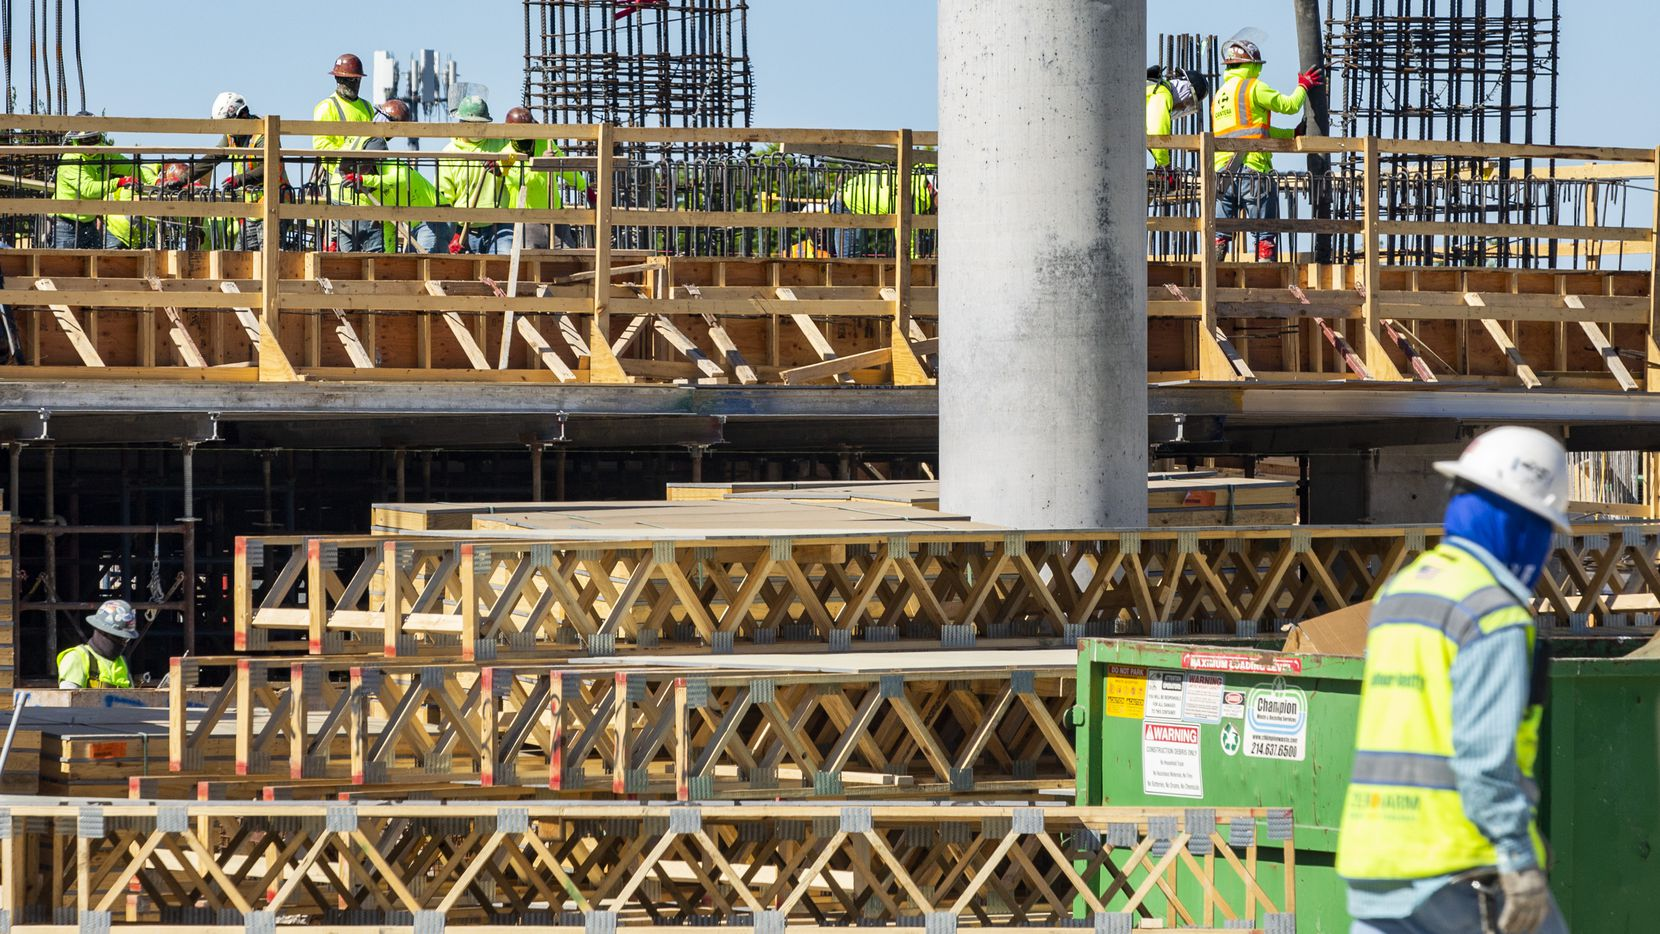 The Dallas area has added more than 7,000 building sector jobs since last October.